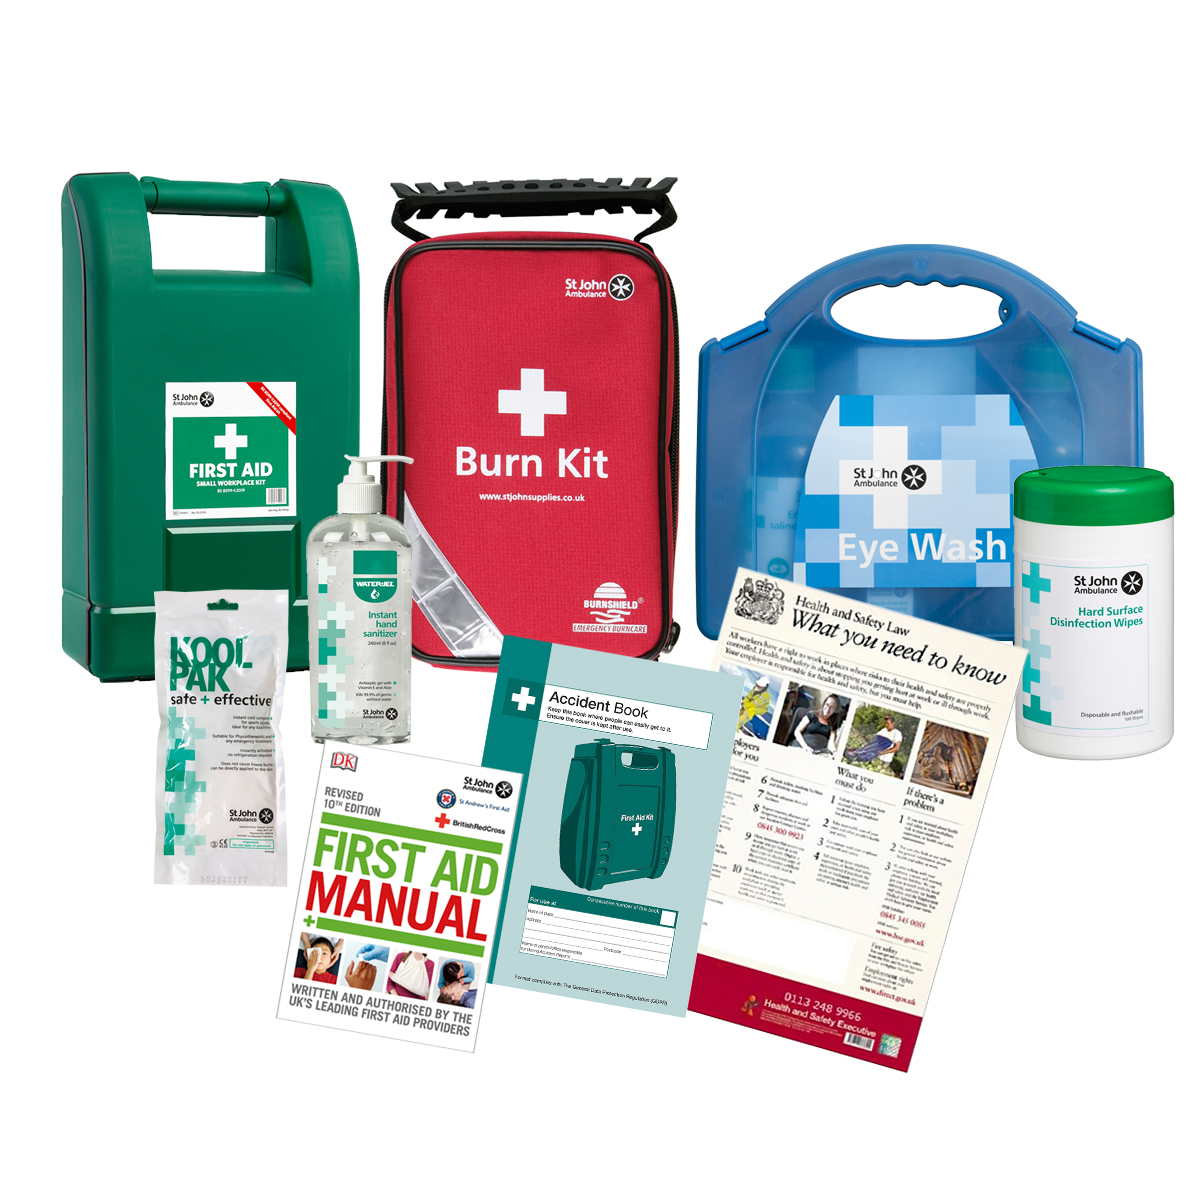 Basic Workplace First Aid Kit Bundle